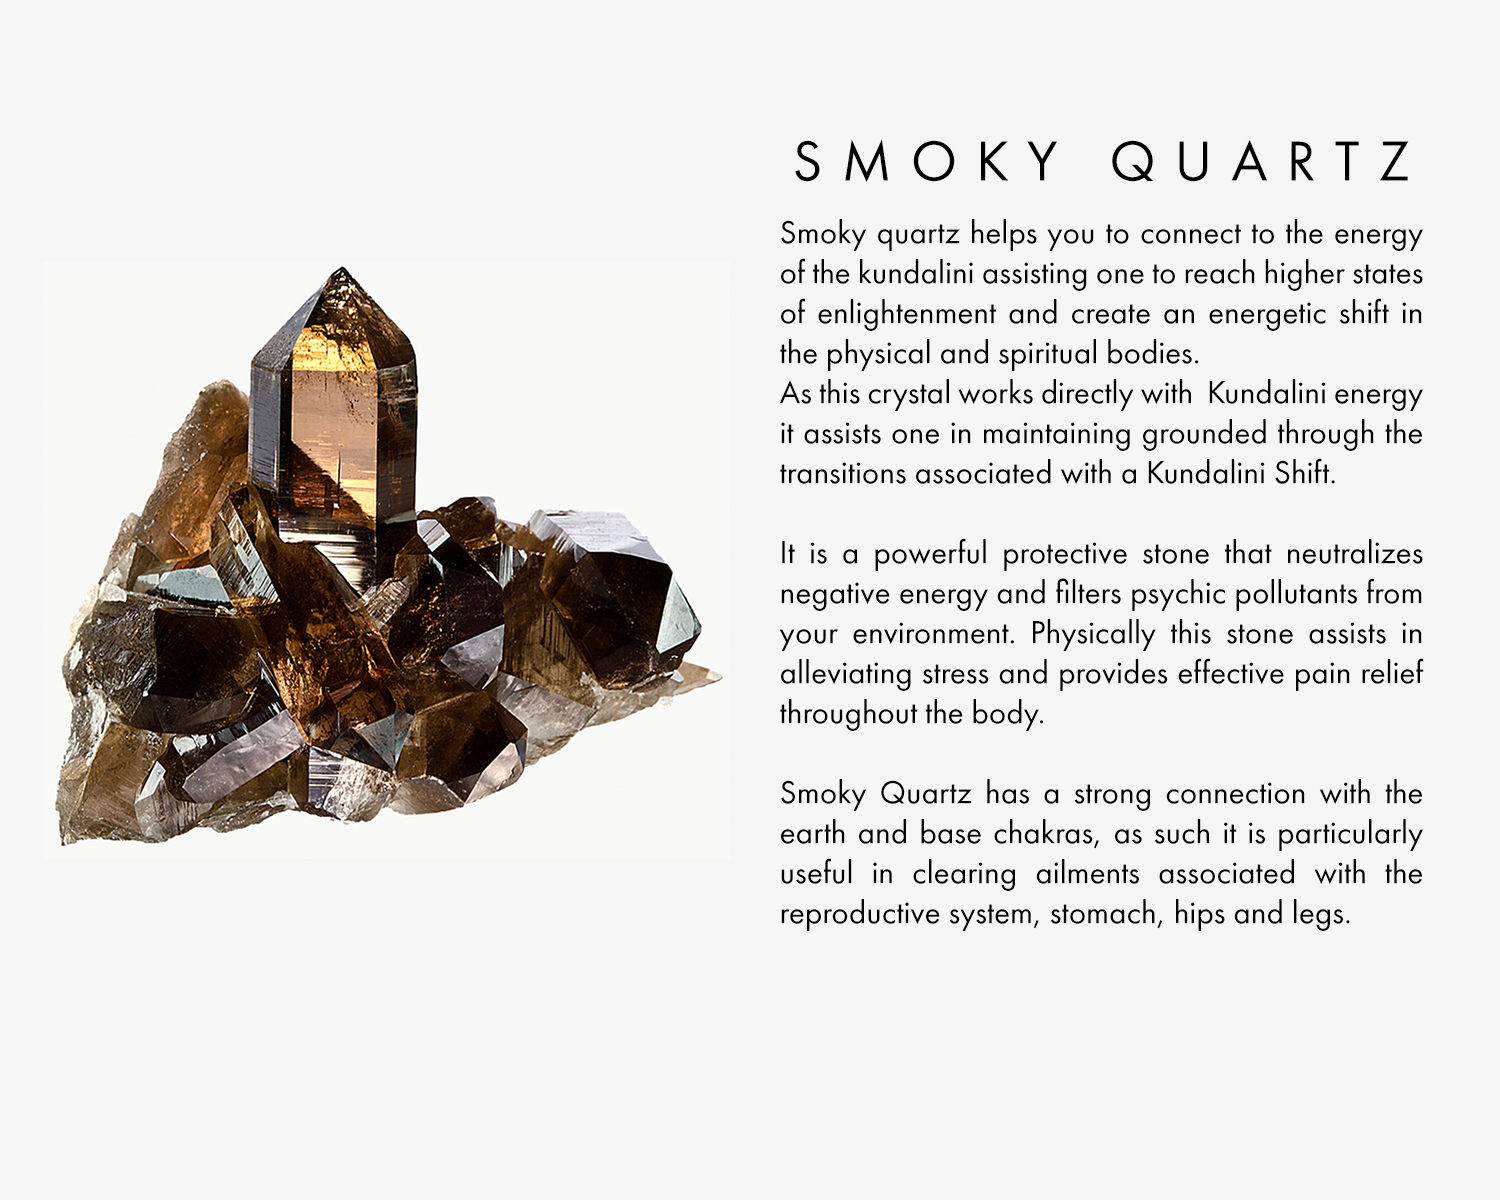 Smoky quartz helps you to connect to the energy of the kundalini assisting one to reach higher states of enlightenment and create an energetic shift in the physical and spiritual bodies. As this crystal works directly withKundalini energy it assists one in maintaining grounded through the transitions associated with a Kundalini Shift.  It is a powerful protective stone that neutralizes negative energy and filters psychic pollutants from your environment. Physically this stone assists in alleviating stress and provides effective pain relief throughout the body.  Smoky Quartz has a strong connection with the earth and base chakras, as such it is particularly useful in clearing ailments associated with the reproductive system, stomach, hips and legs.